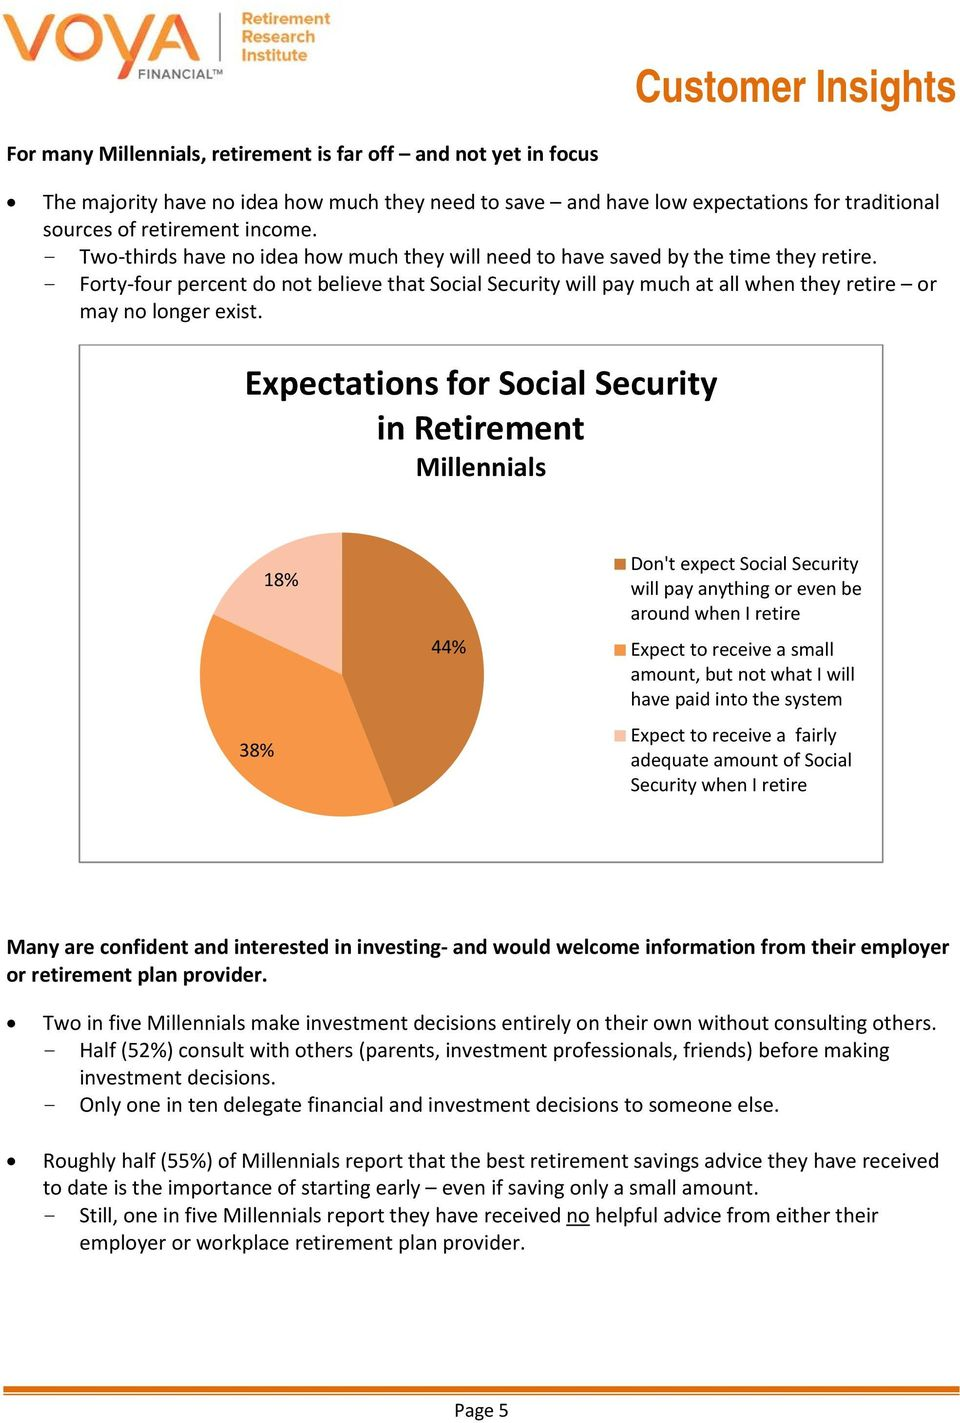 - Forty-four percent do not believe that Social Security will pay much at all when they retire or may no longer exist.